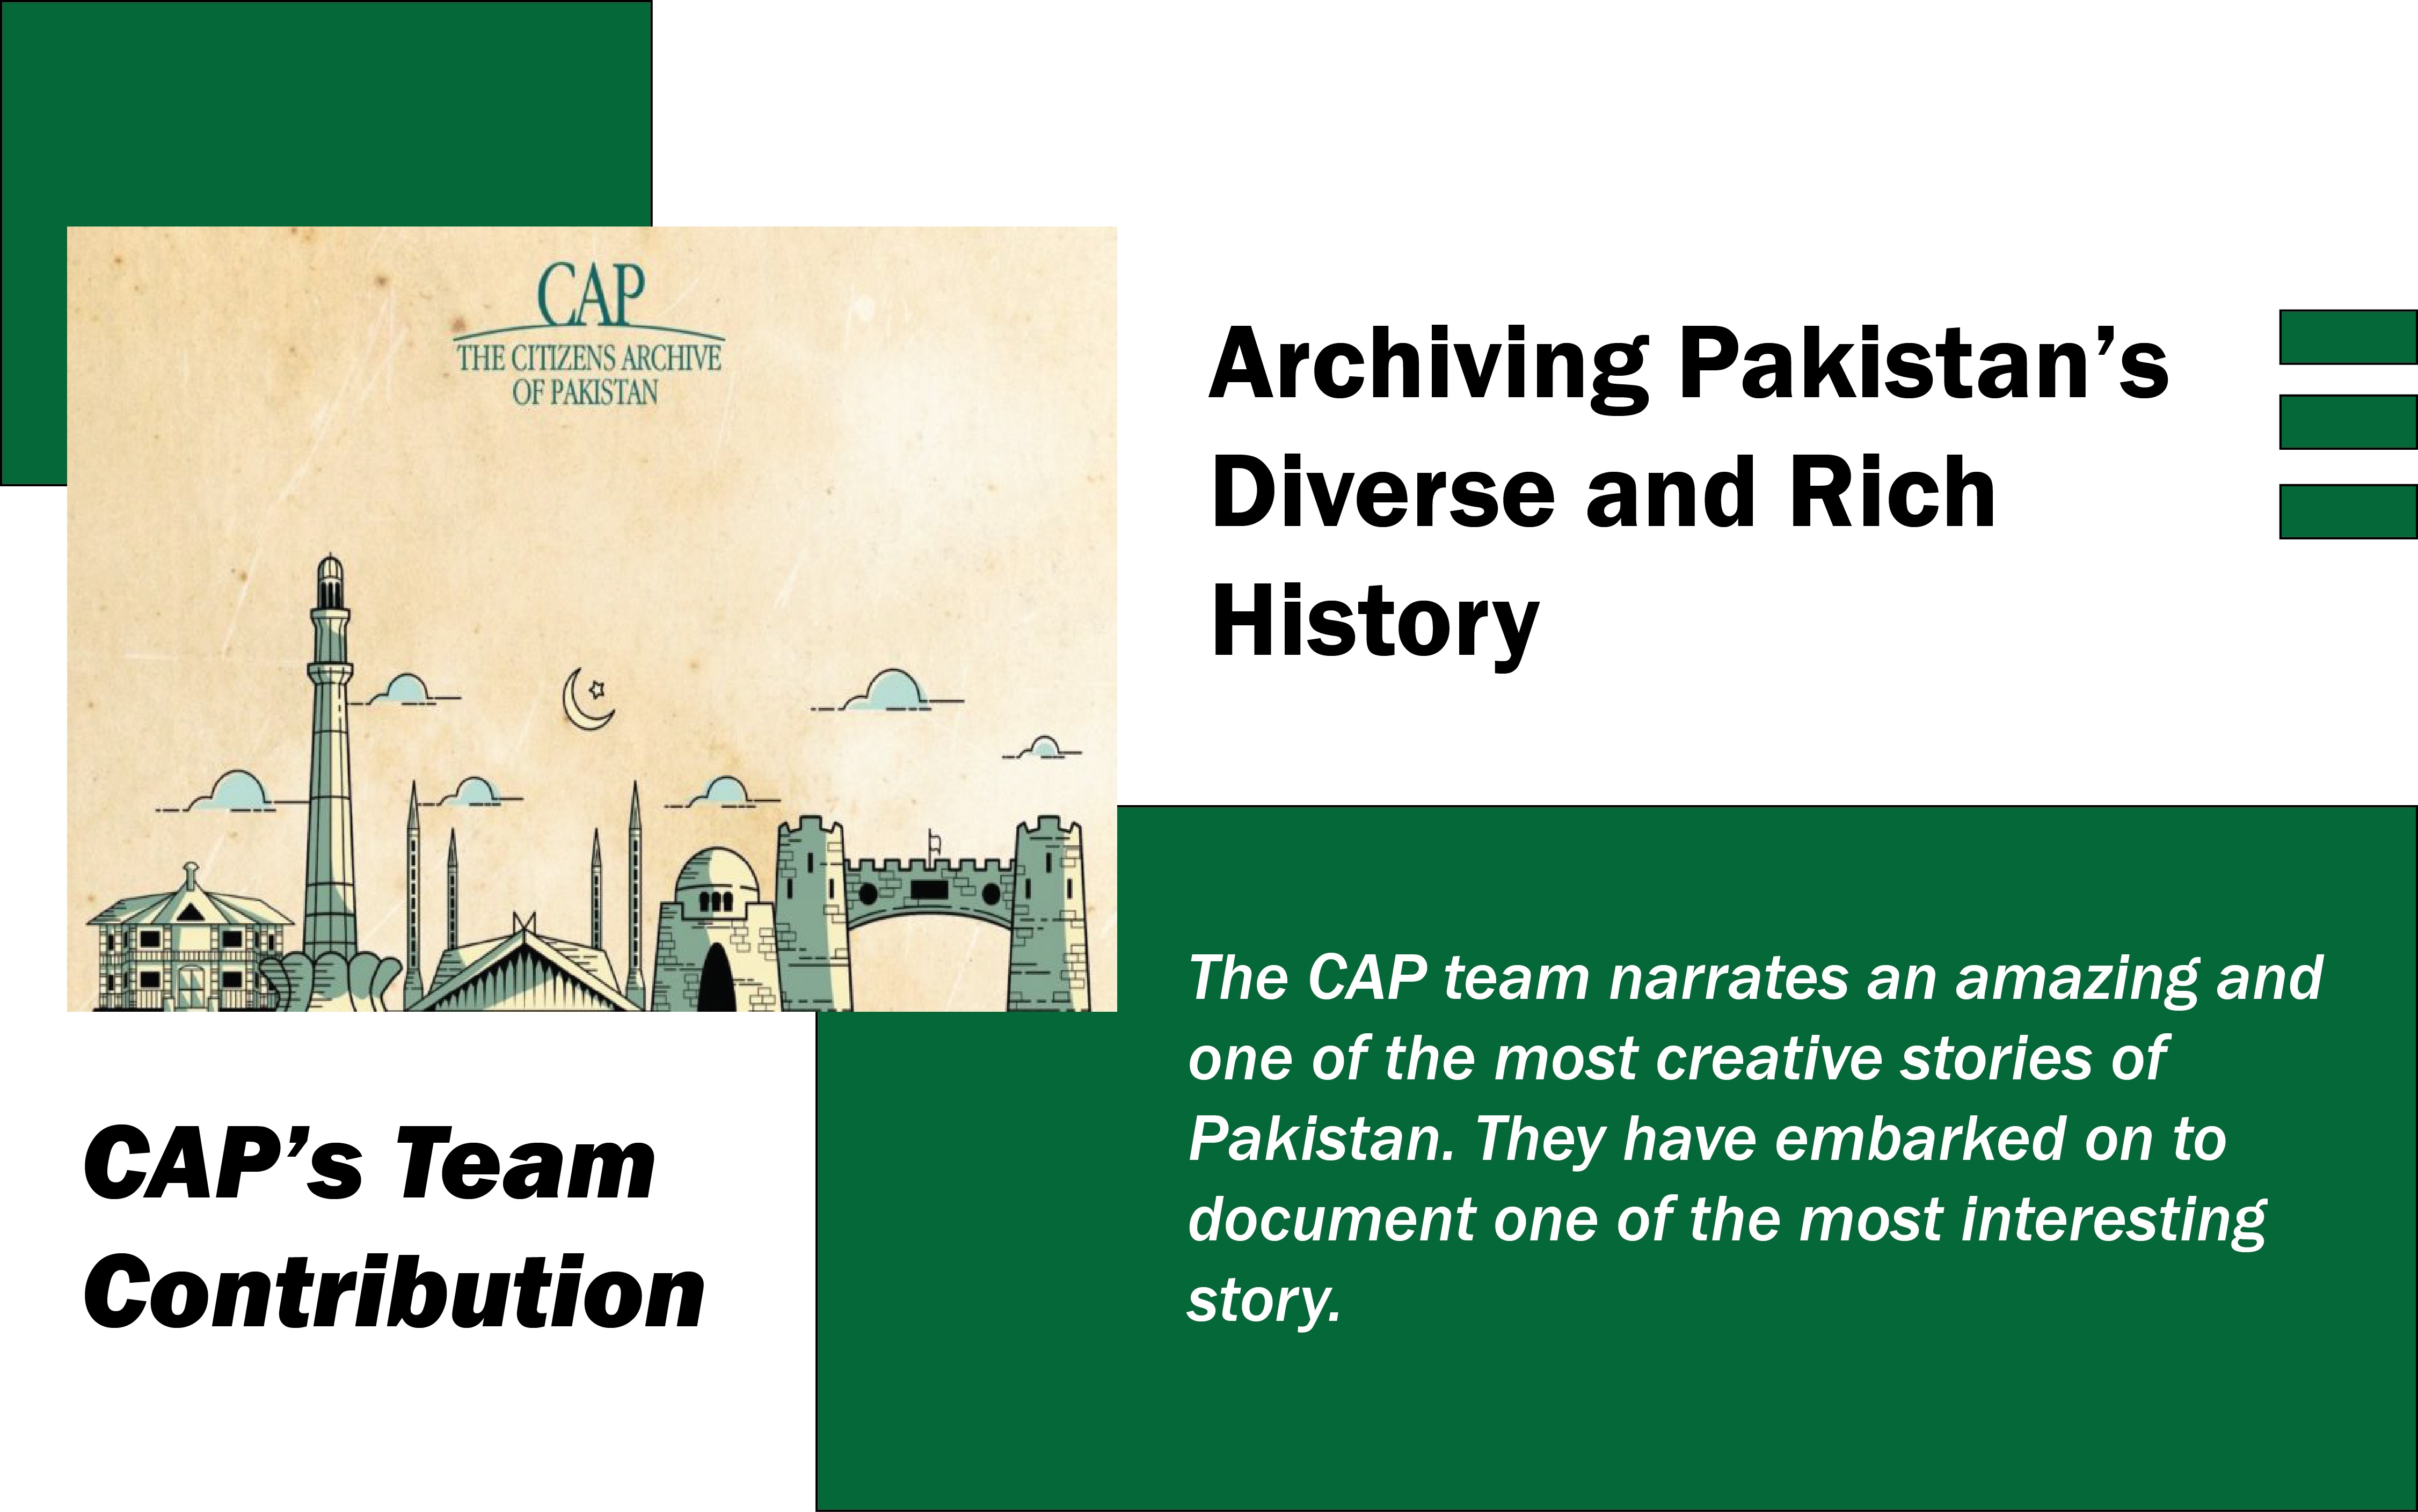 Archiving Pakistan's Diverse and Rich History